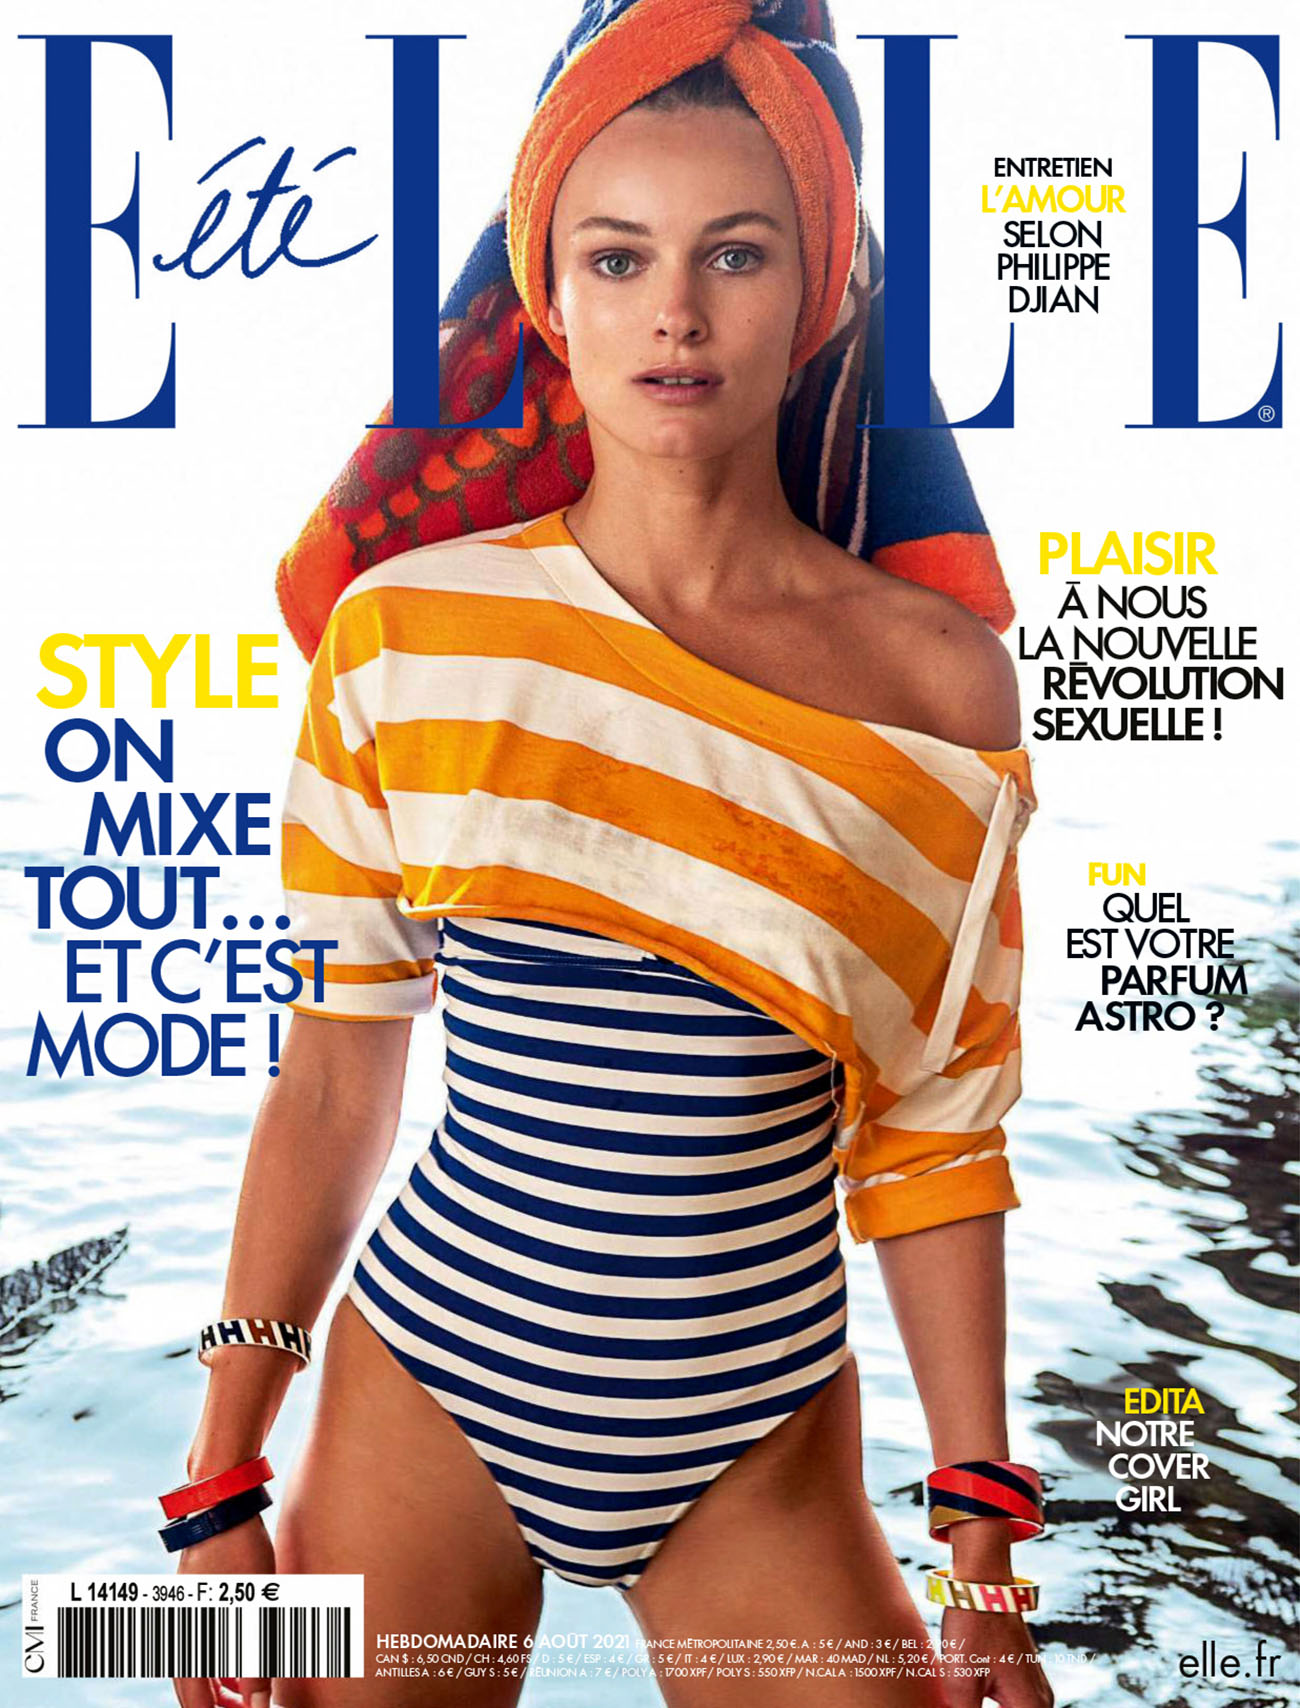 Edita Vilkeviciute covers Elle France August 6th, 2021 by Gilles Bensimon